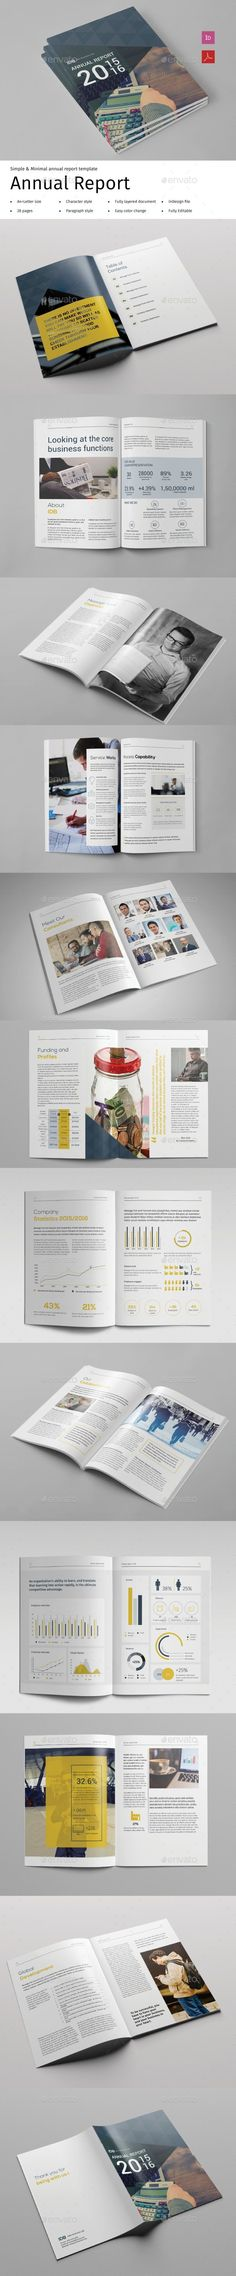 Professional & Corporate InDesign Brochure template that can be used for any type of industry. The clean and clear layout and free font type will help you enhance your message in a way that will captivate the reader! Indesign Brochure Templates, Travel Brochure Template, Brochure Design, Corporate Brochure, Business Brochure, Annual Report Design, Organizational Structure, File Image, Print Templates